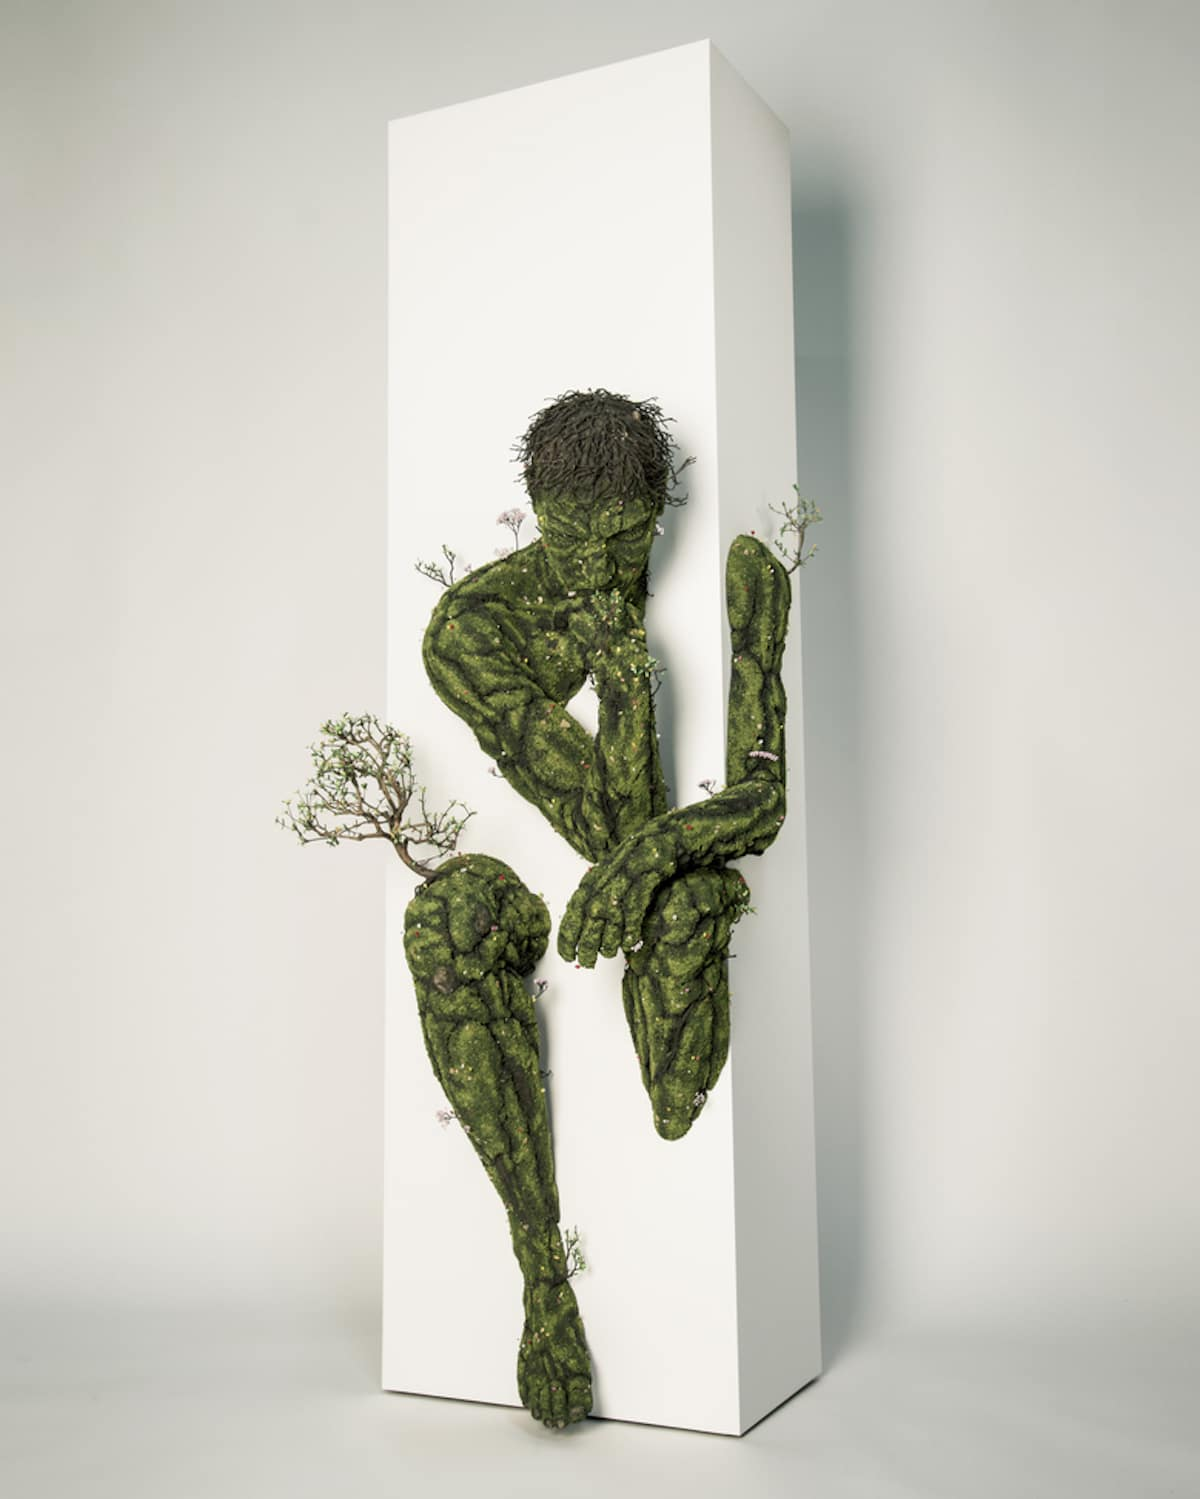 Plant Artwork by Emeric Chantier